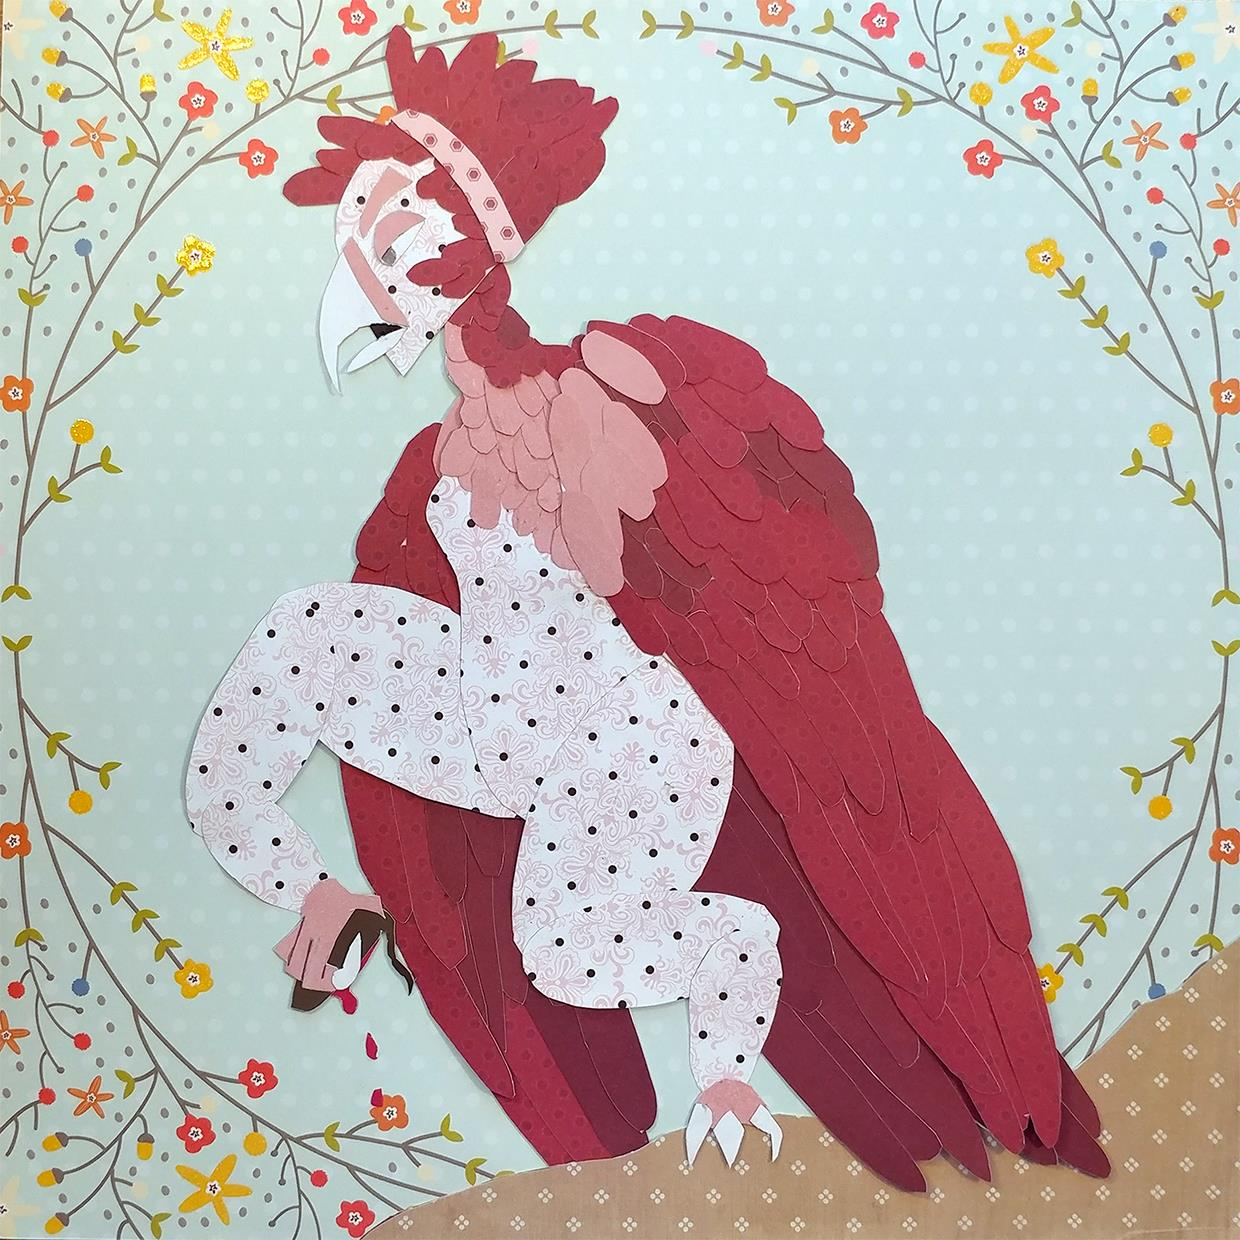 This Harpy was first sketched out in a sketchpad, then traced using tracing paper. Various card stock papers were gathered, and